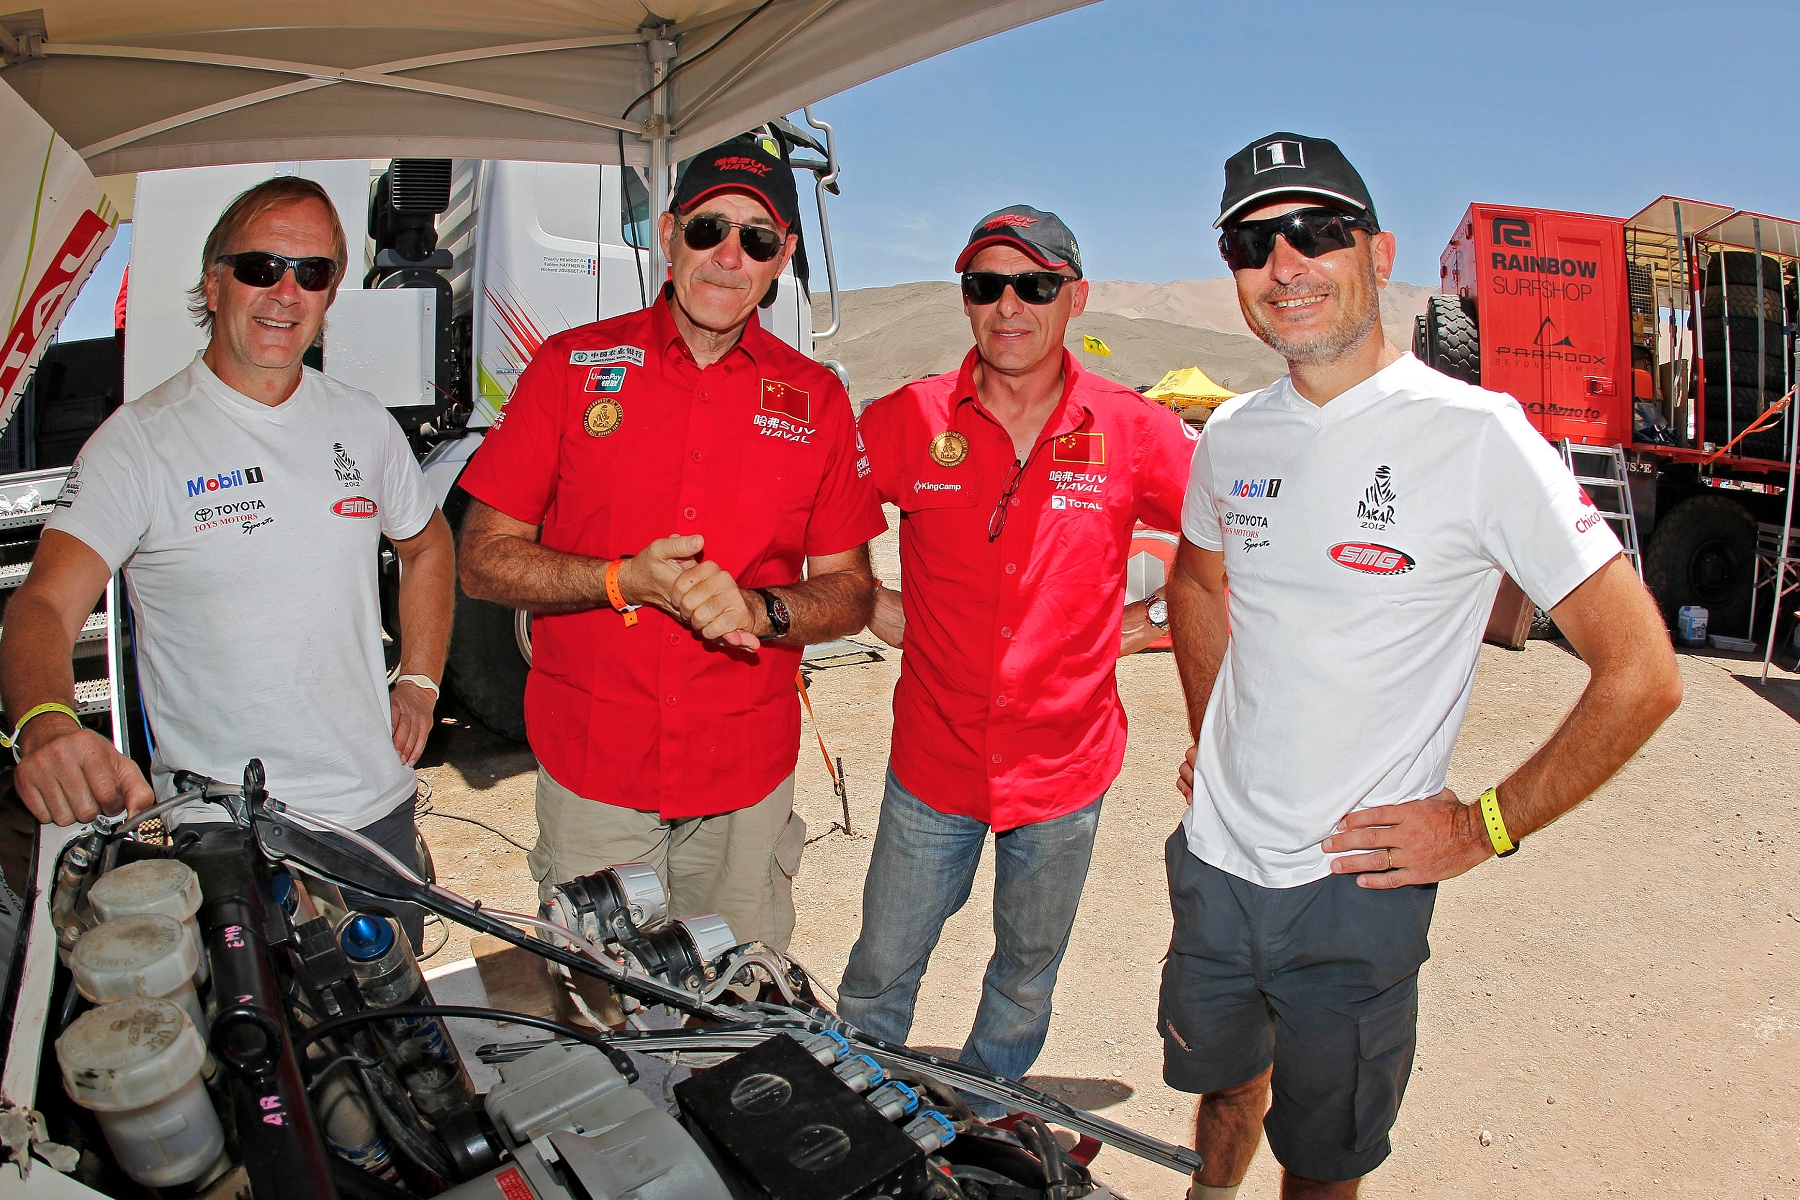 MOTORSPORT - DAKAR ARGENTINA CHILE PERU 2012 - REST DAY / JOUR DE REPOS - COPIAPO (CHI) - 08/01/2012 - PHOTO: FRANÇOIS FLAMAND / DPPI